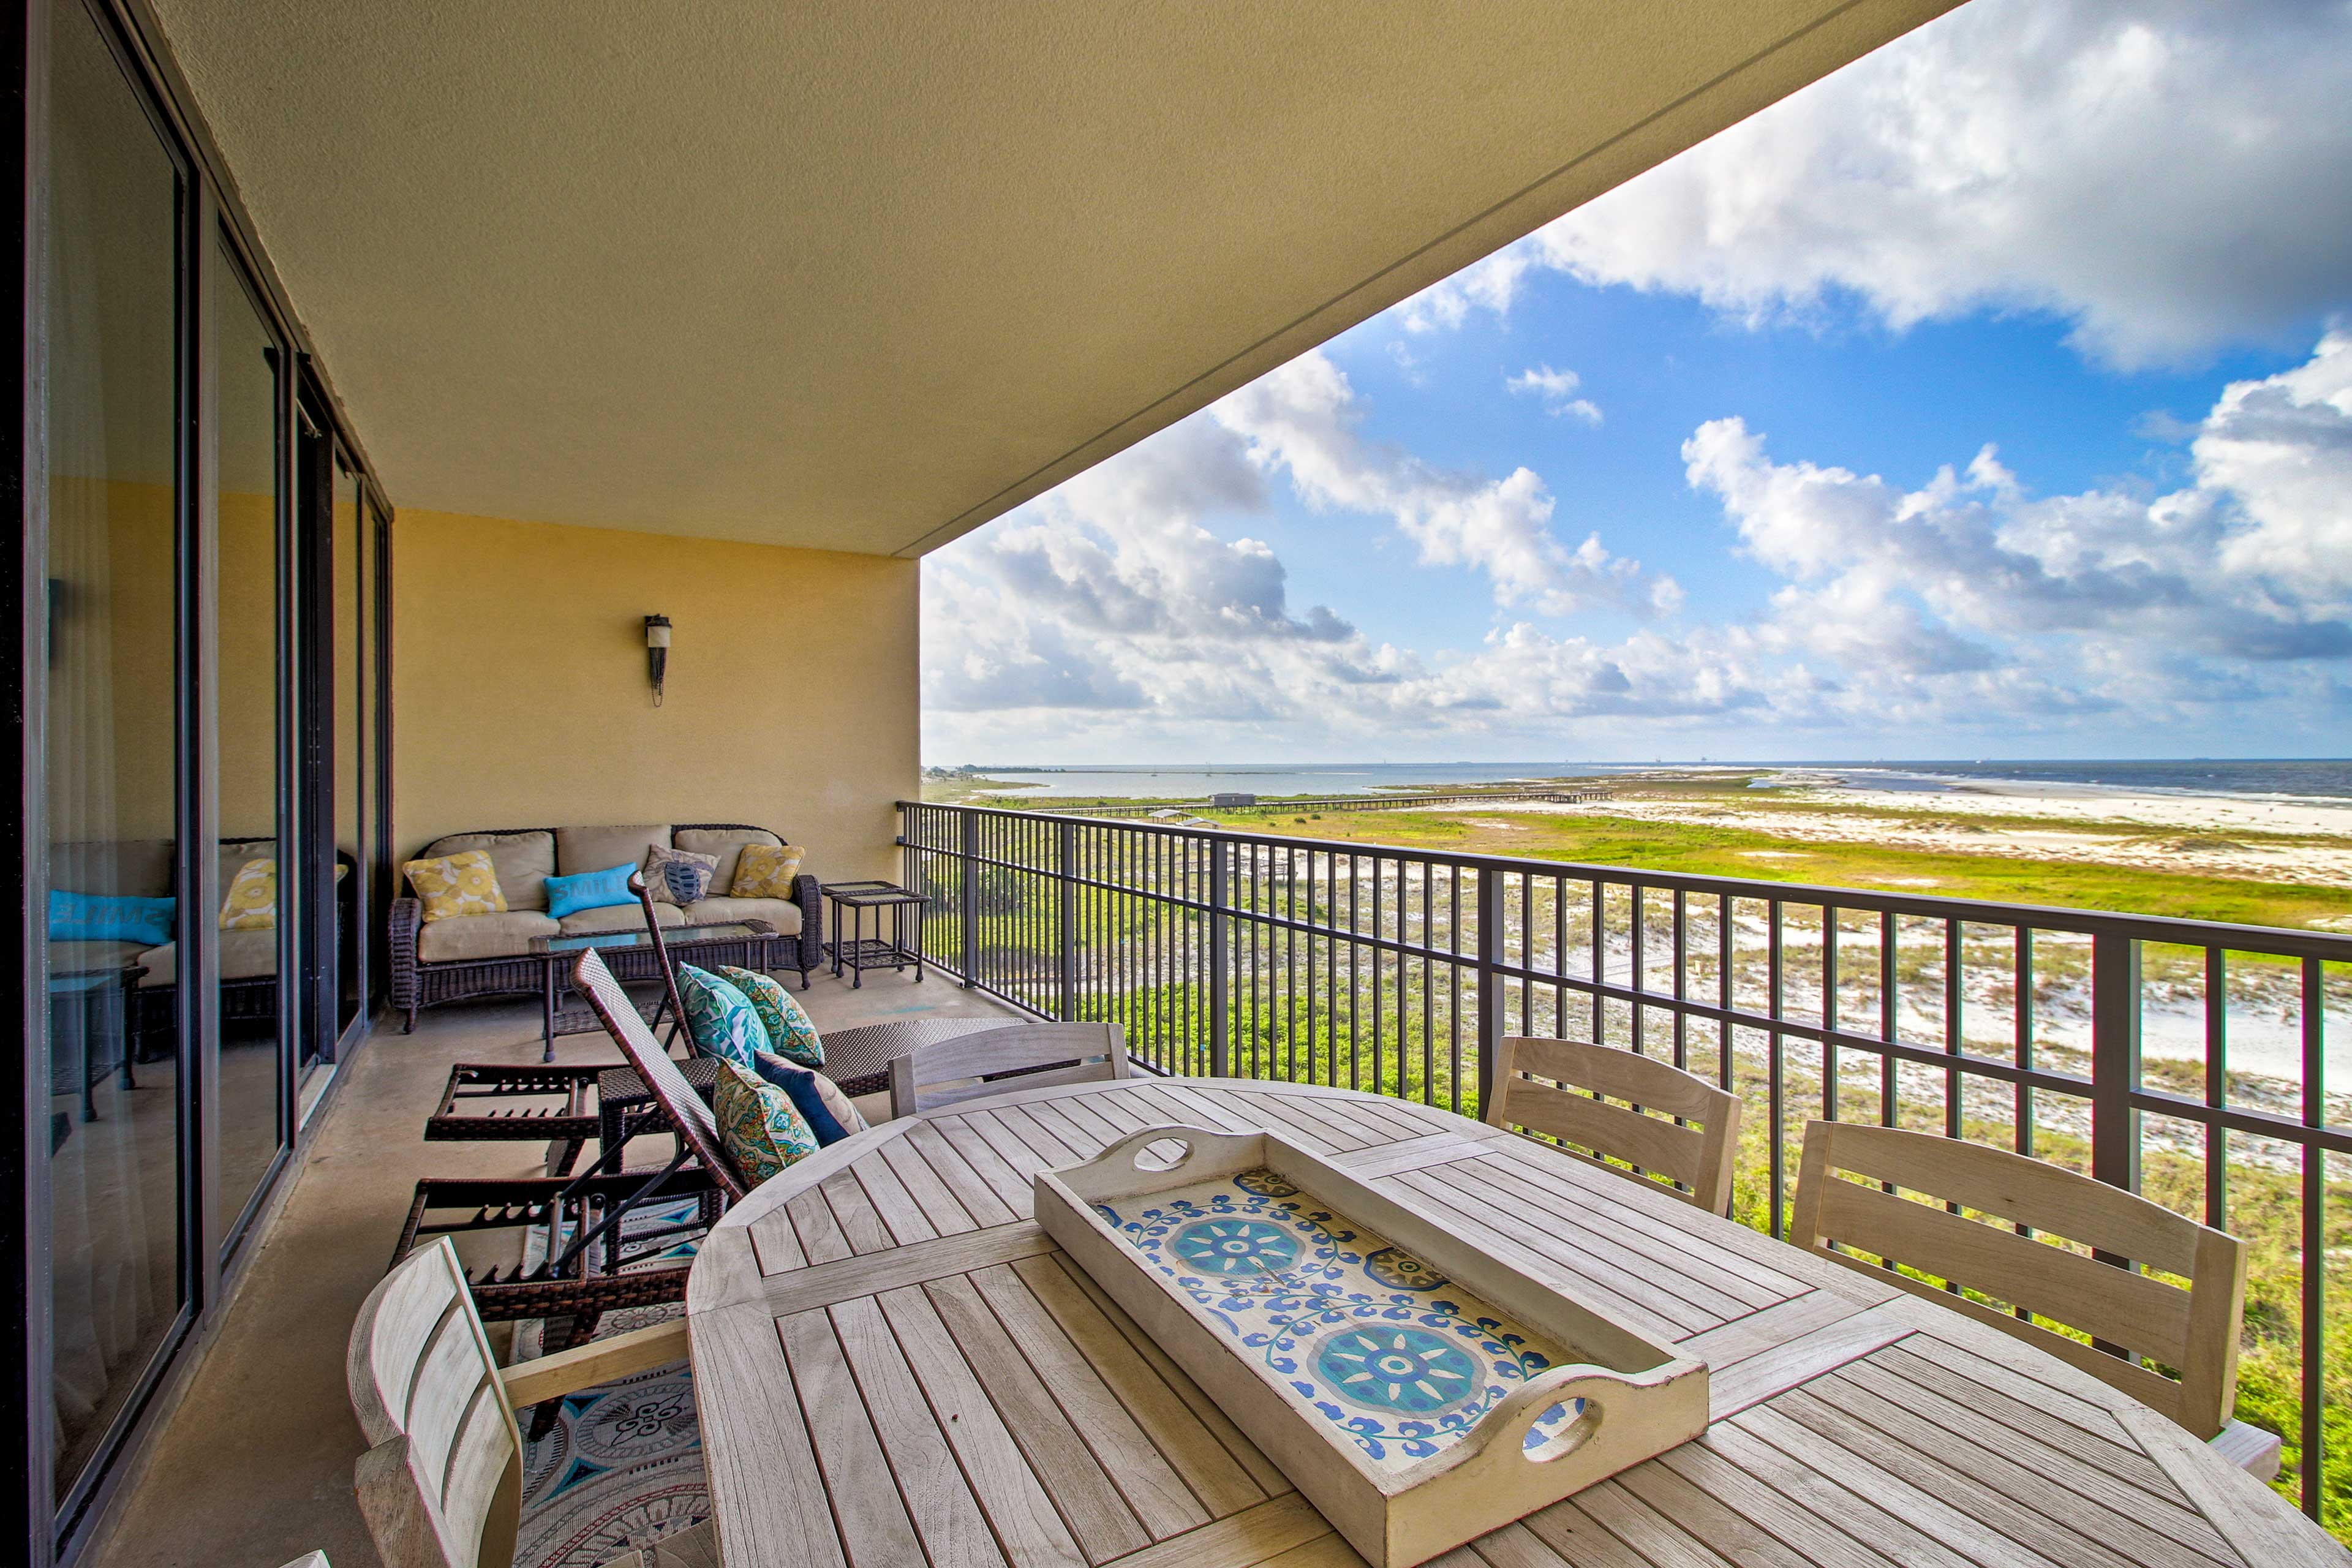 Gulf views and relaxing beach days await at this Dauphin Island vacation rental!